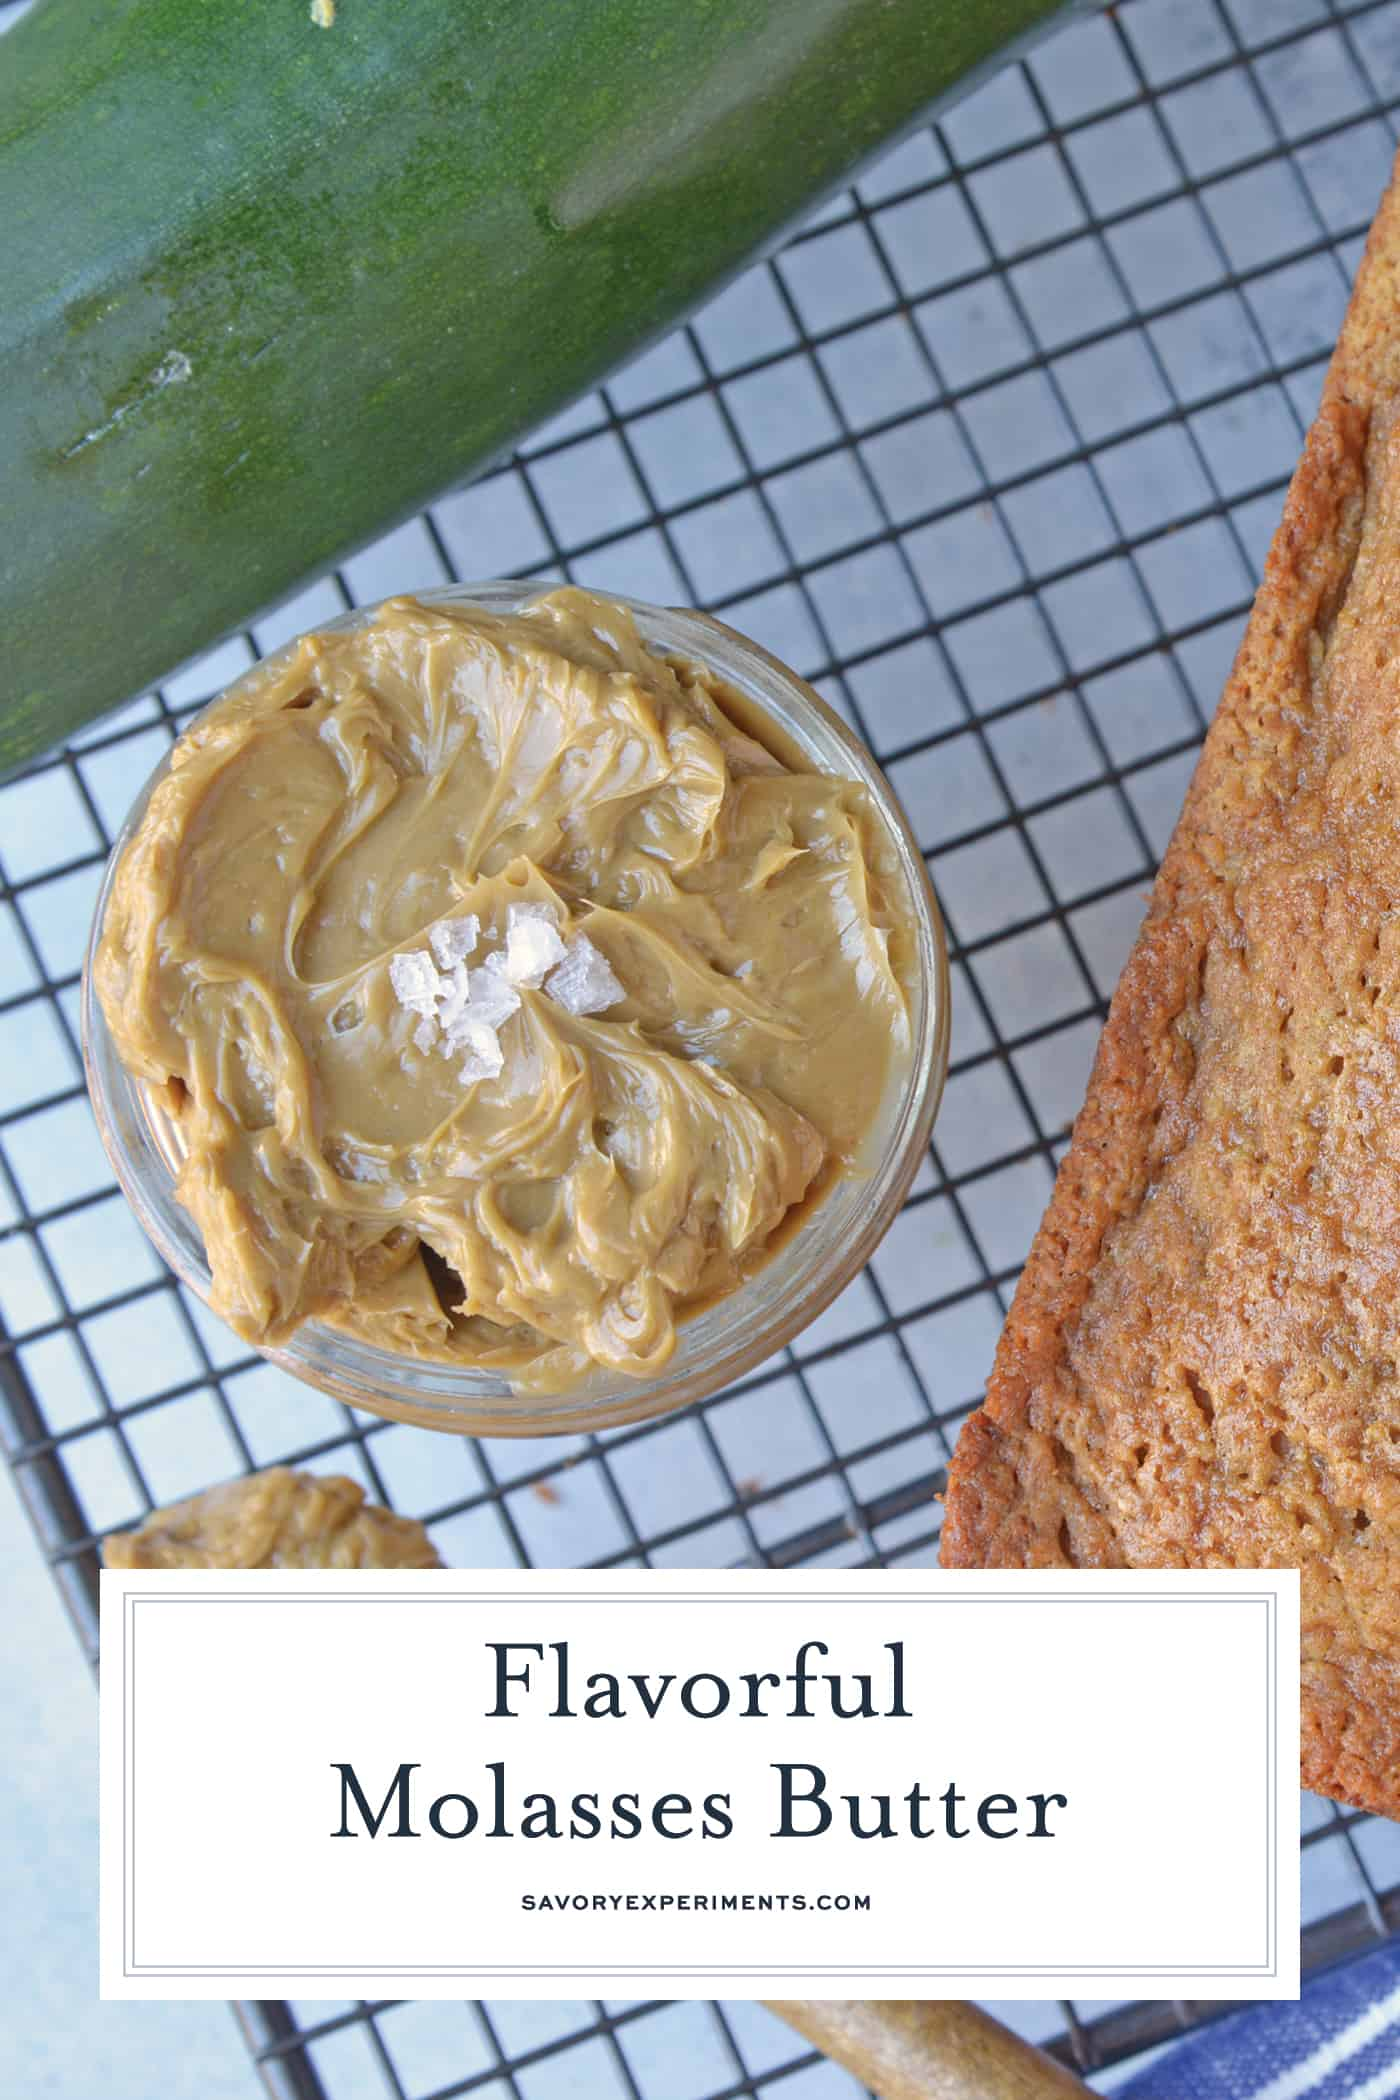 Molasses Butter is the blend of butter, molasses and one secret ingredient that will never guess until see the recipe! Served best on fresh zucchini bread and biscuits! #flavoredbutter #molassesbutter www.savoryexperiments.com